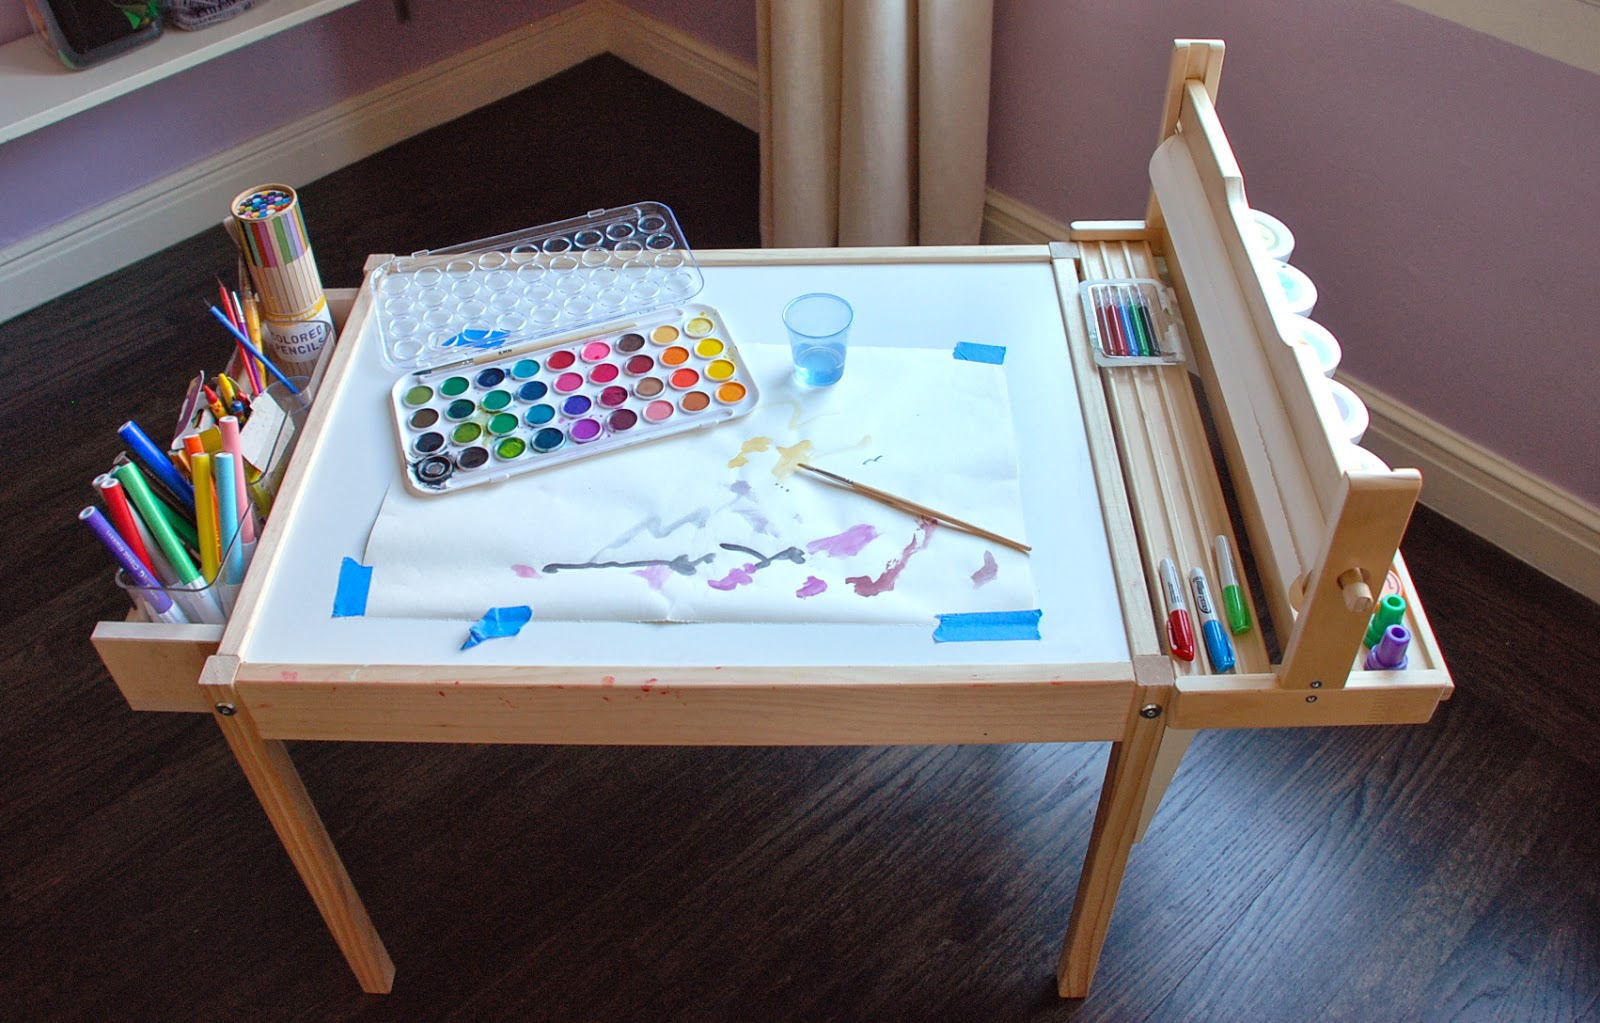 Craft desk for kids - Arts And Craft Table For Kids